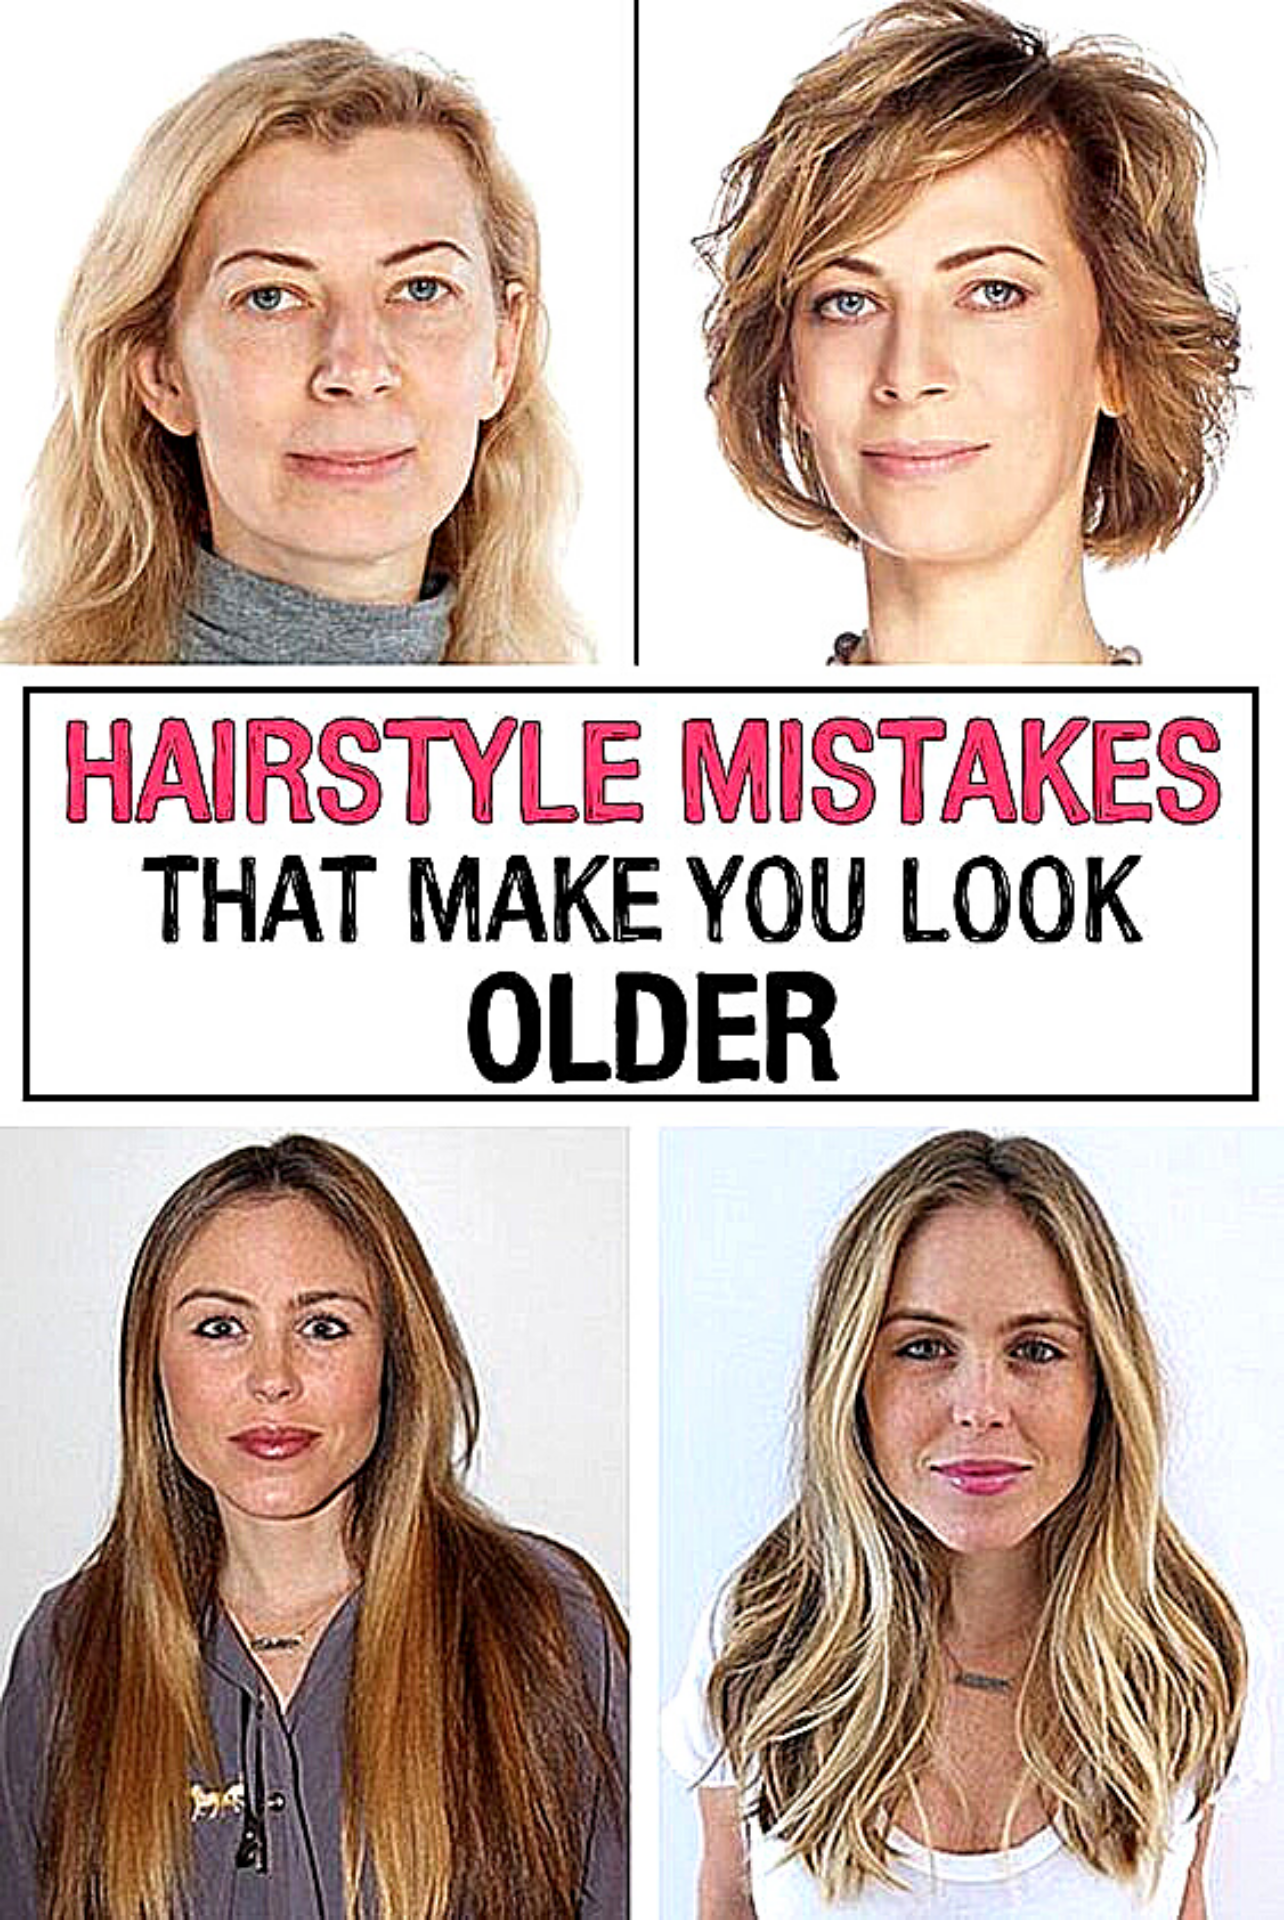 11 Hairstyle Mistakes That Are Aging You In 2020 Older Women Hairstyles Hair Mistakes Womens Hairstyles